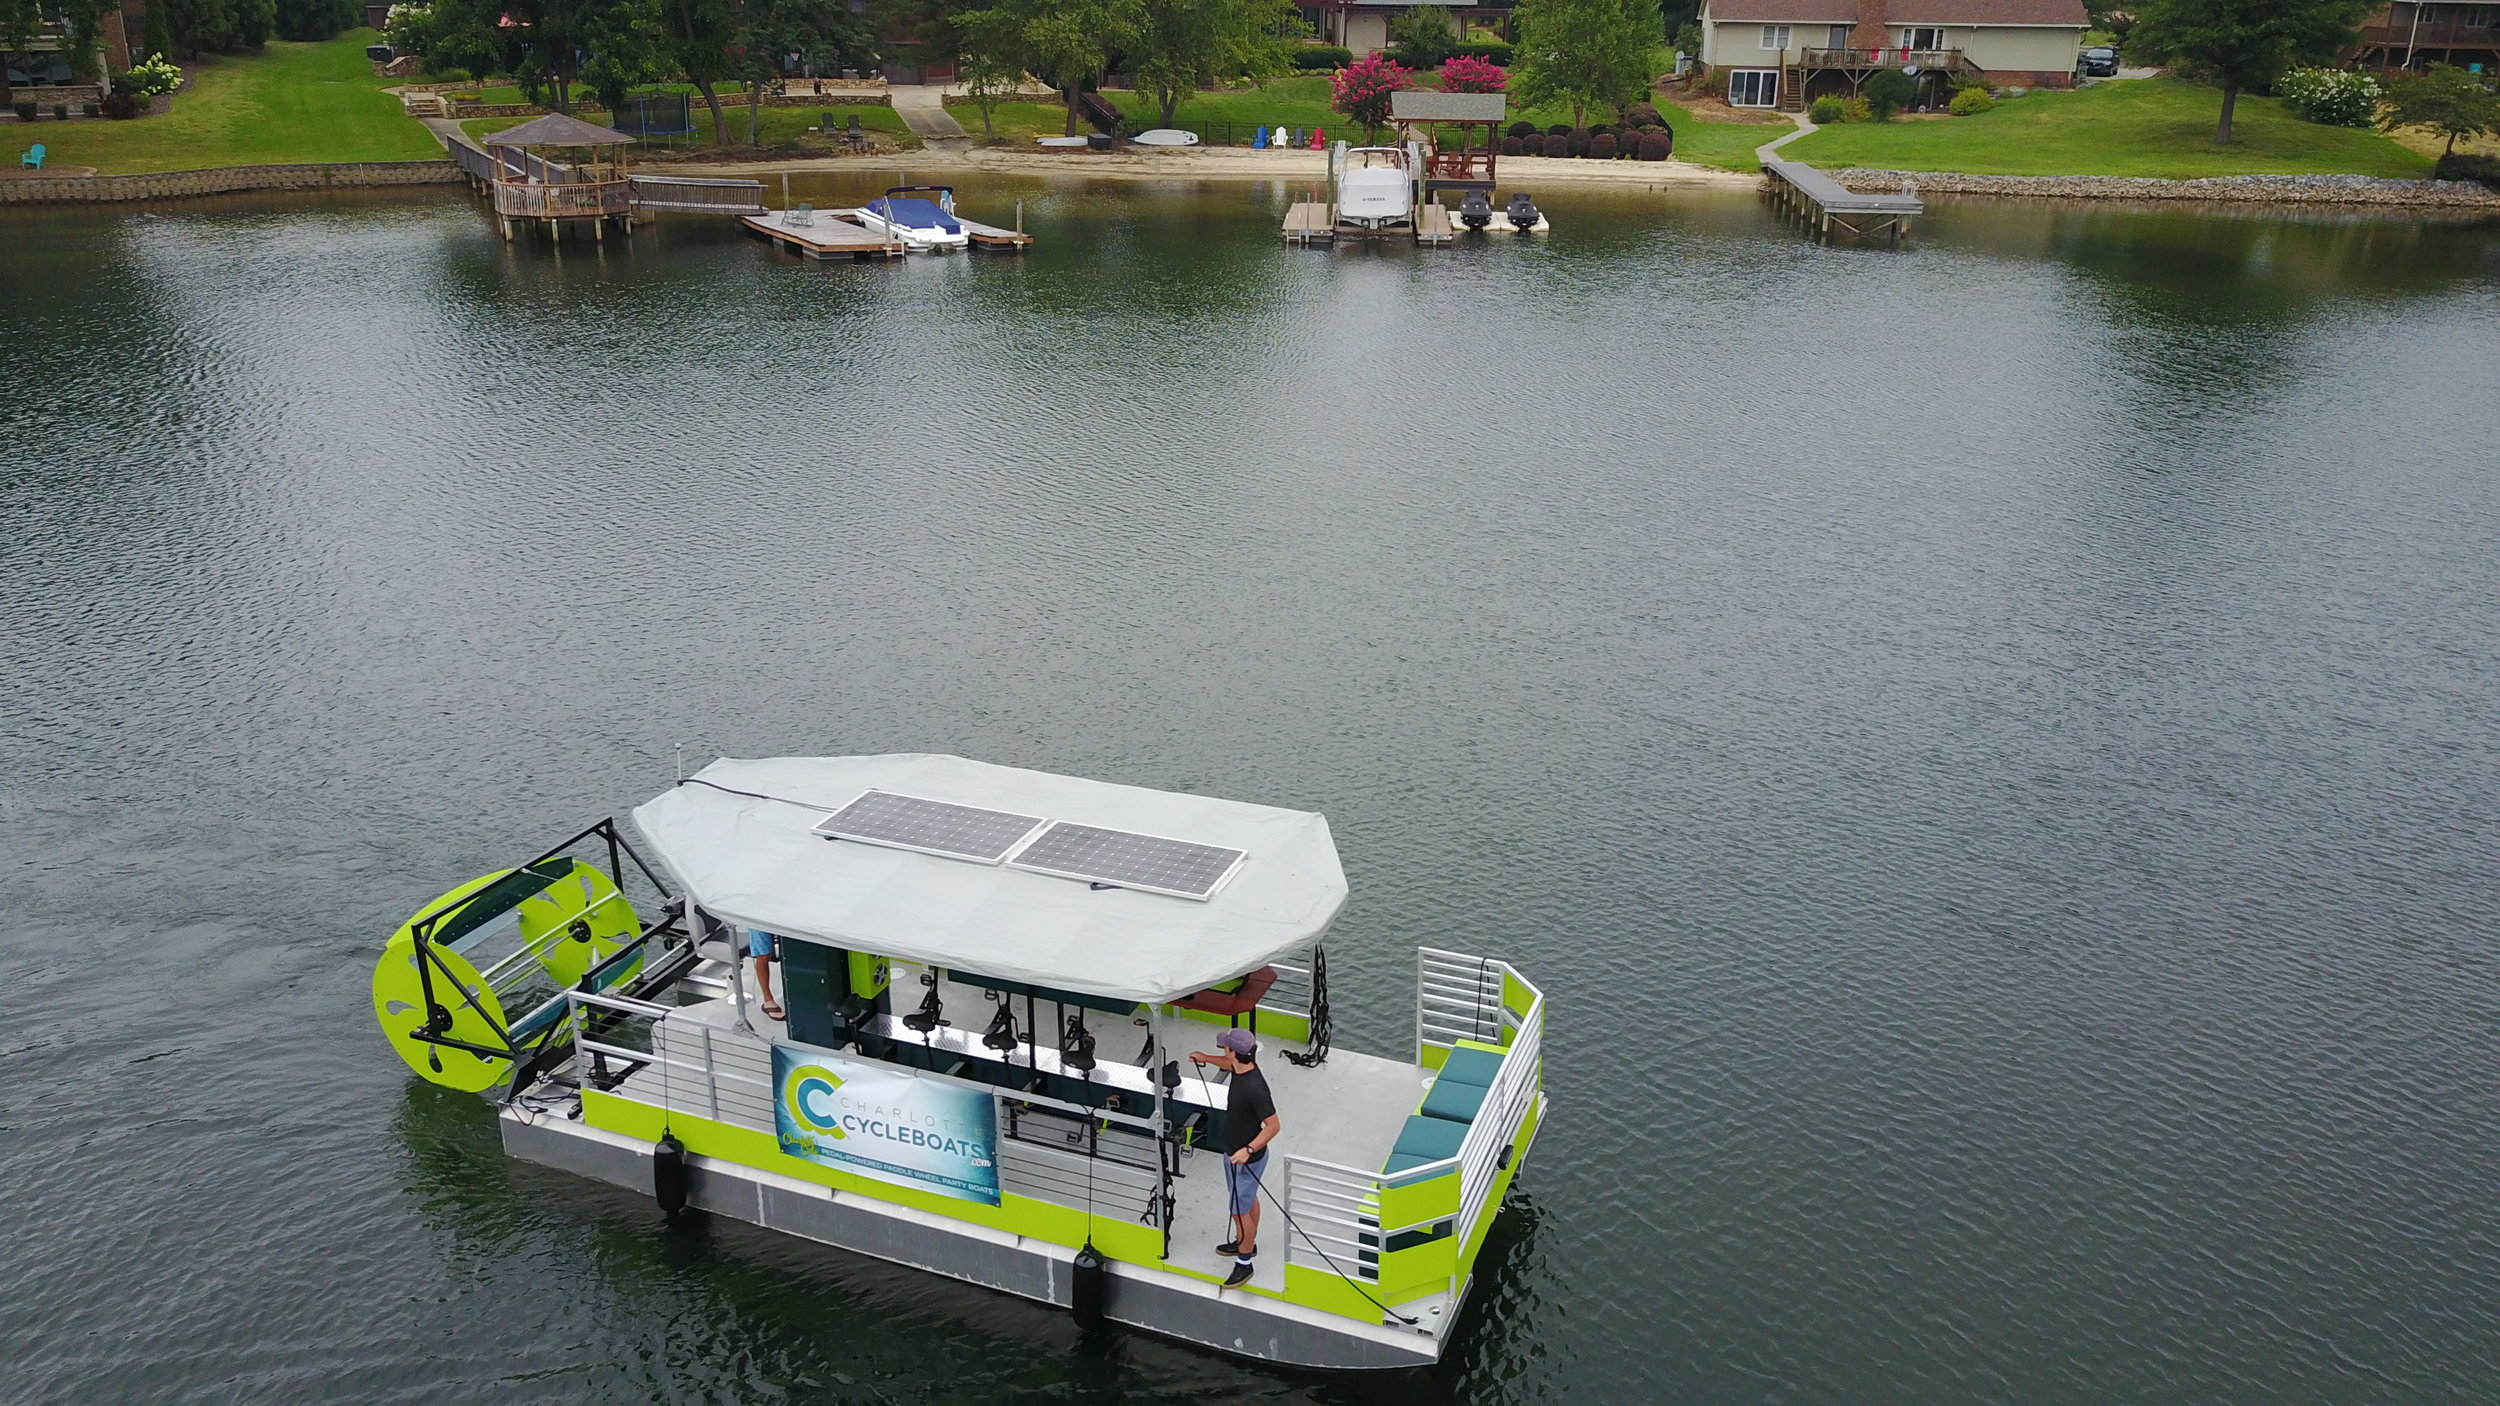 Charlotte Cycleboats  with Groove Management